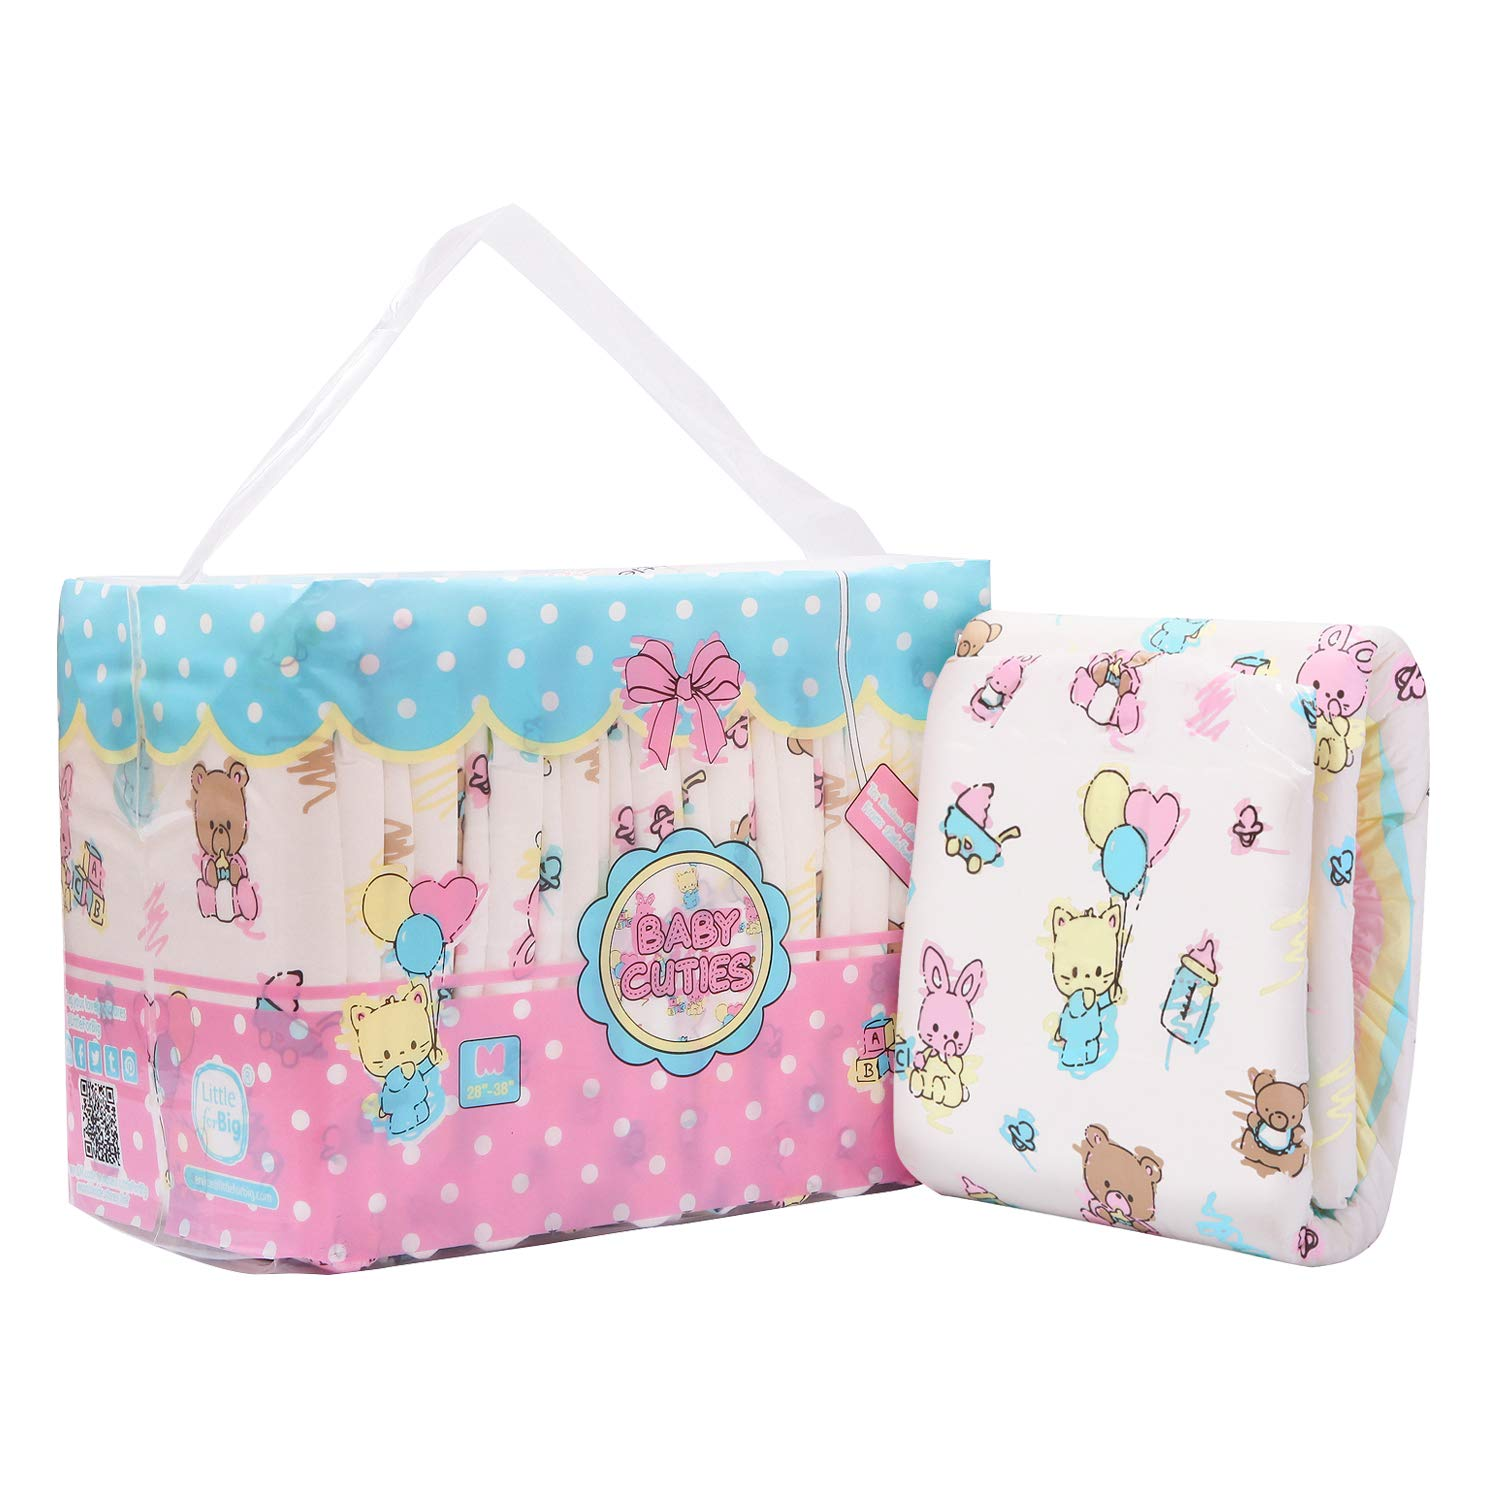 Littleforbig Printed Adult Brief Diapers Adult Baby Diaper Lover ABDL 10 Pieces - Baby Cuties(M)